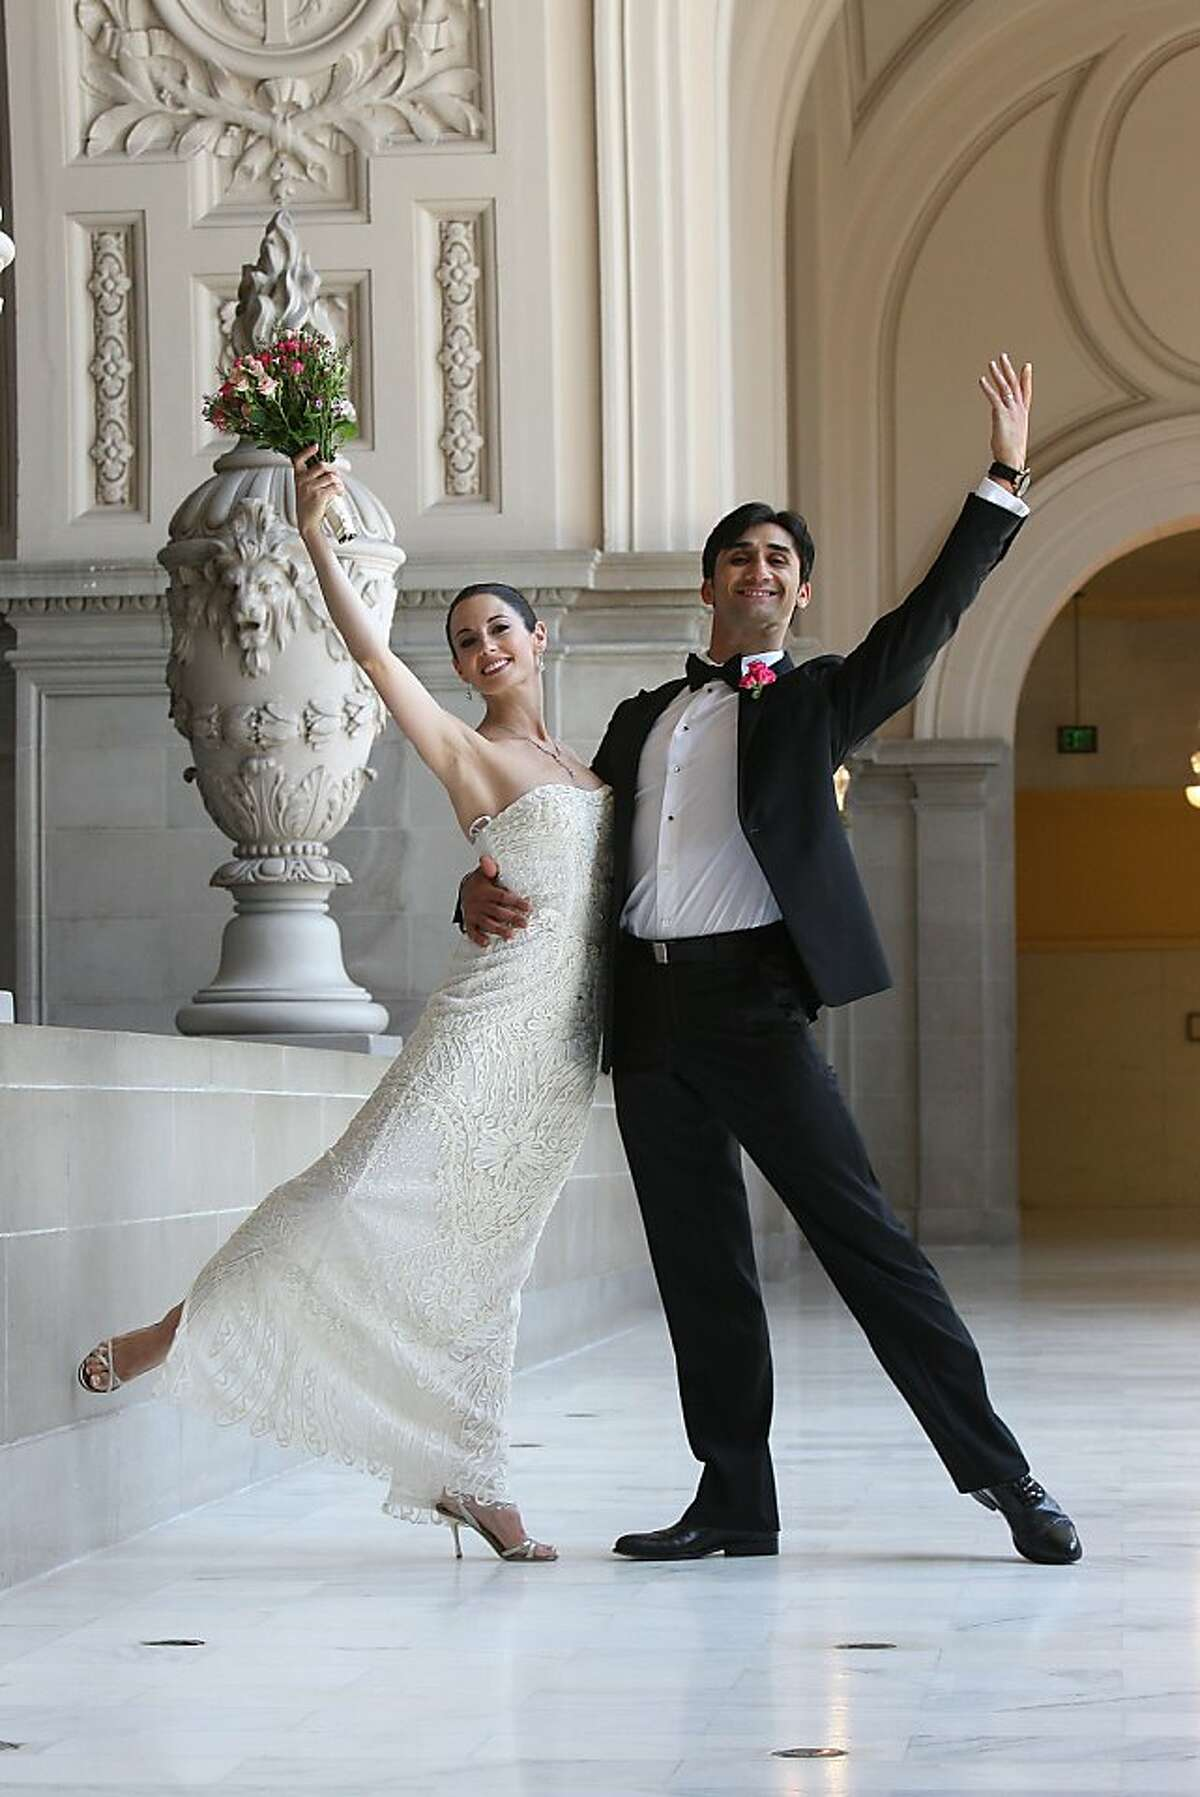 SF Ballet principal dancer Vanessa Zahorian and her husband, fellow dancer Davit Karapetyan pose after marrying in a civil ceremony at City Hall in San Francisco, Calif., on Tuesday, July 12, 2011.